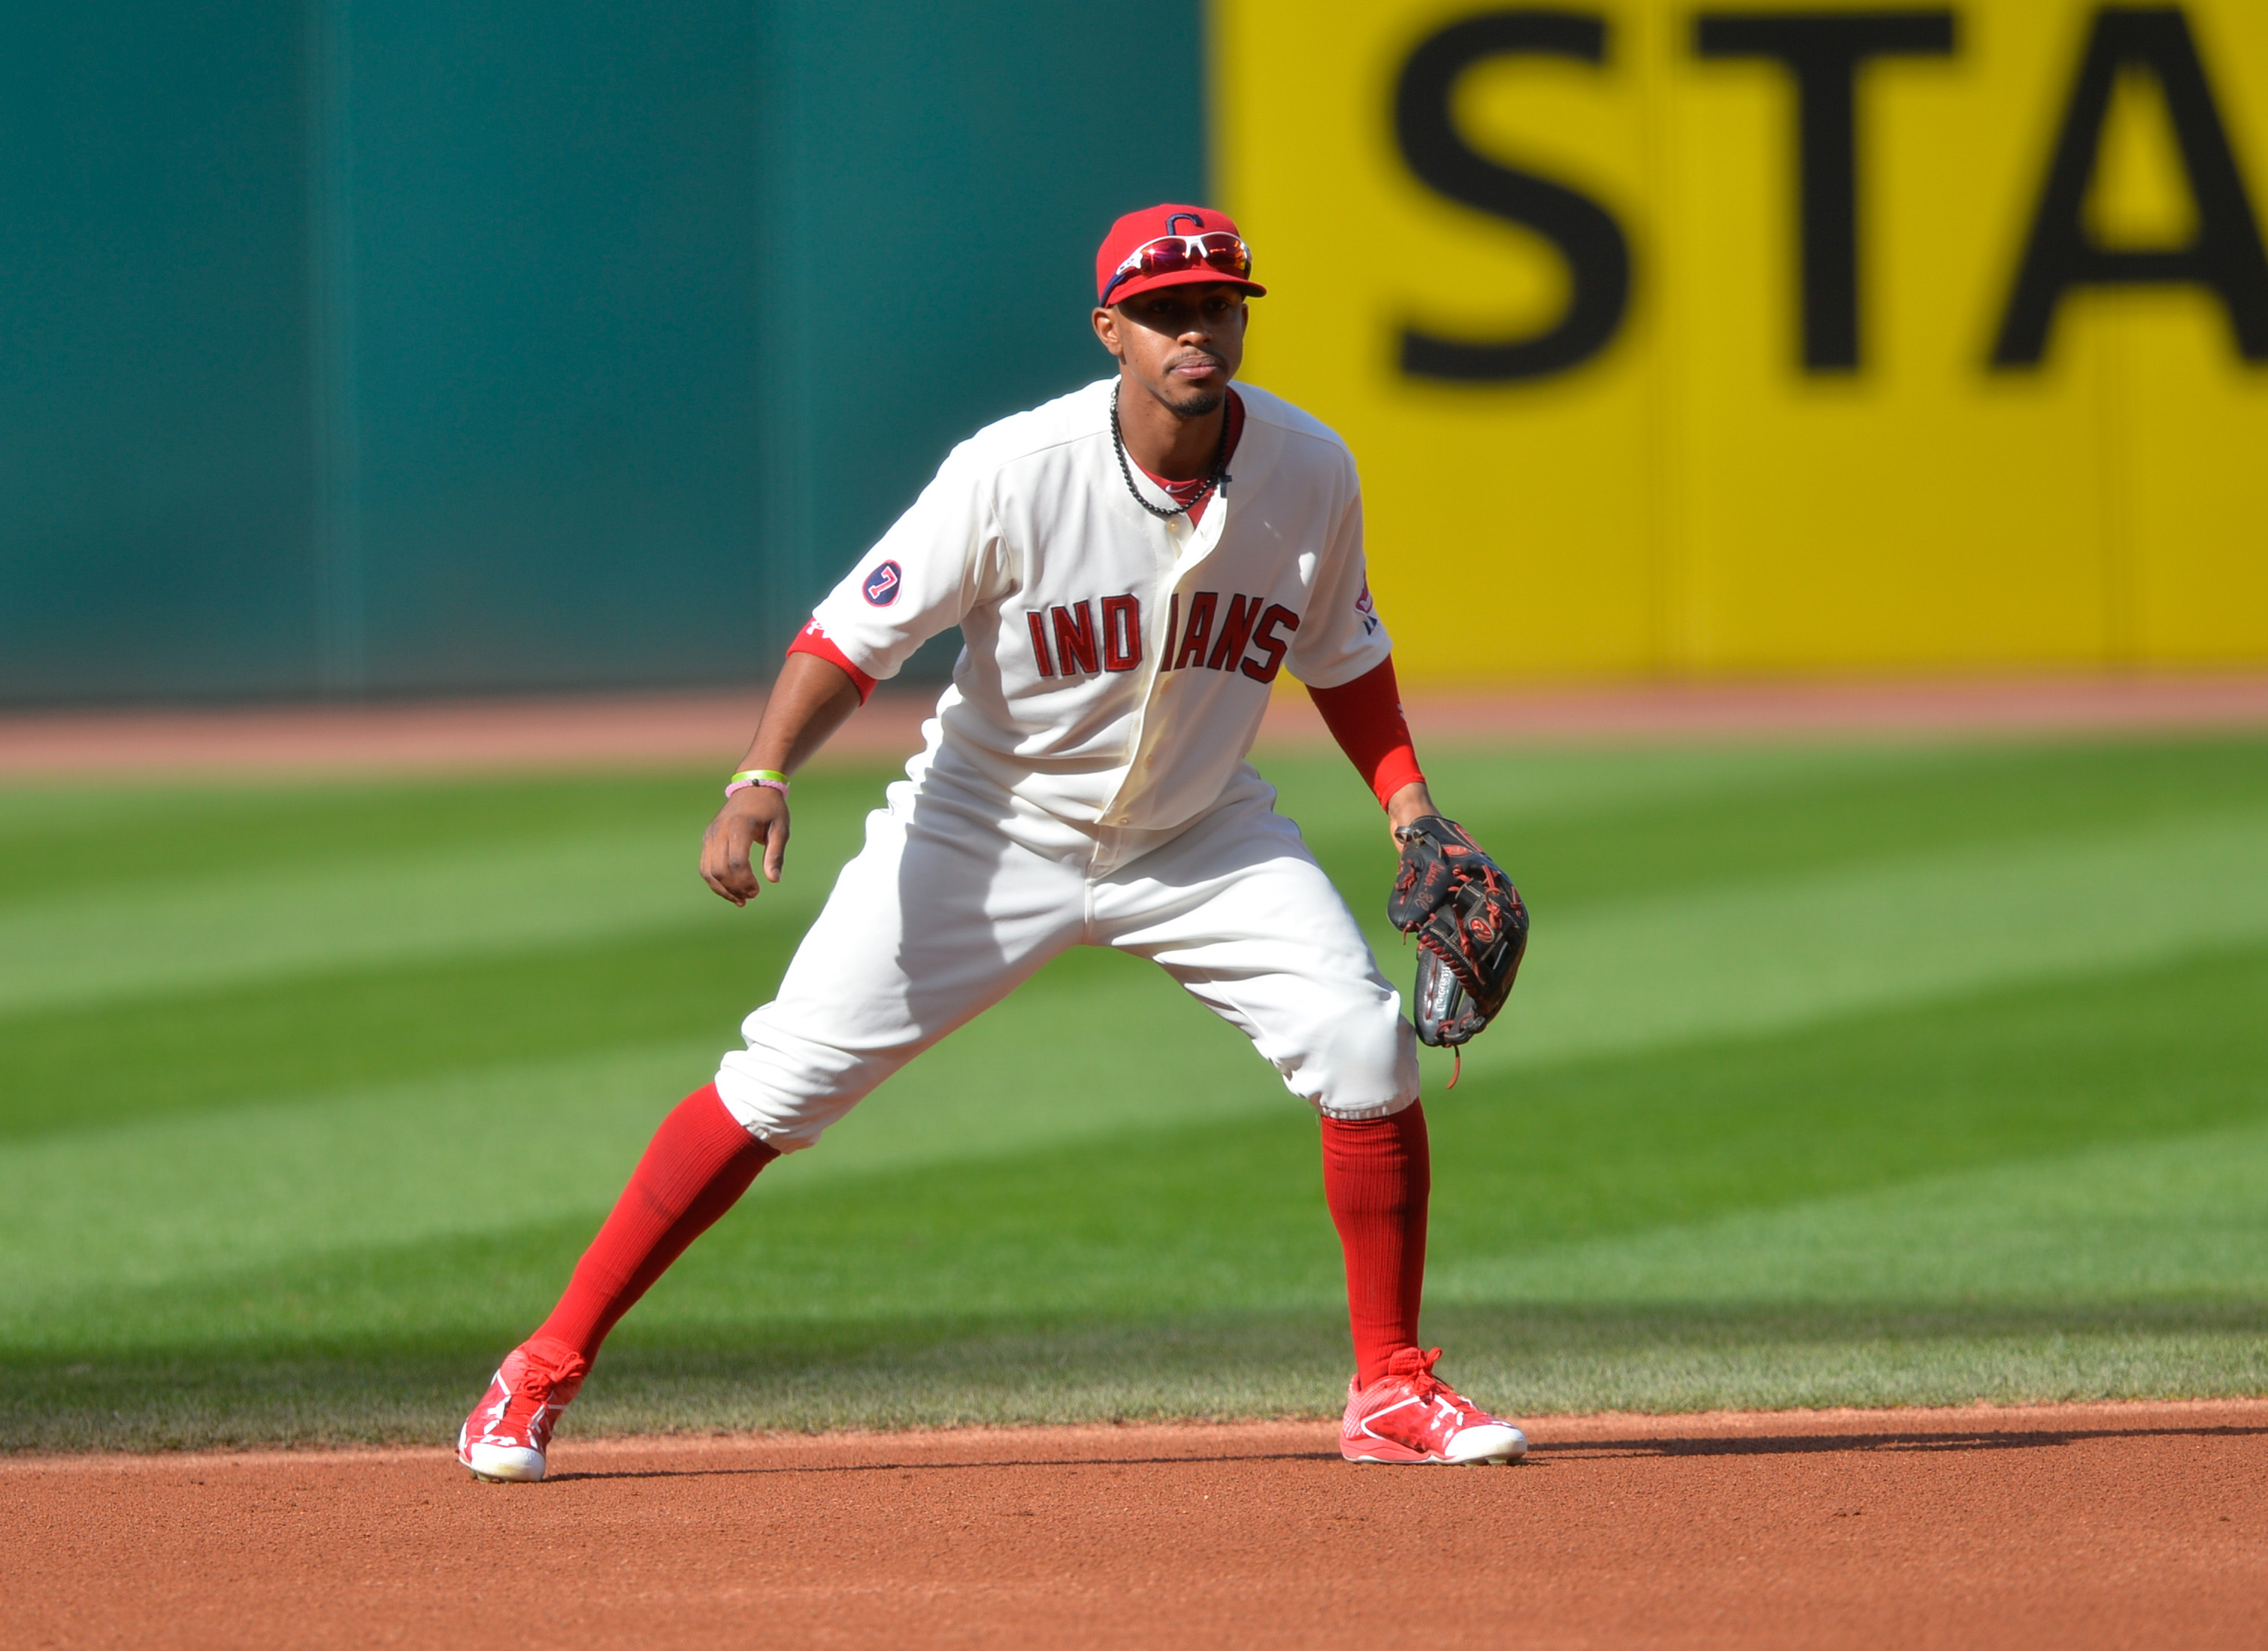 Is Francisco Lindor the top shortstop in the division?